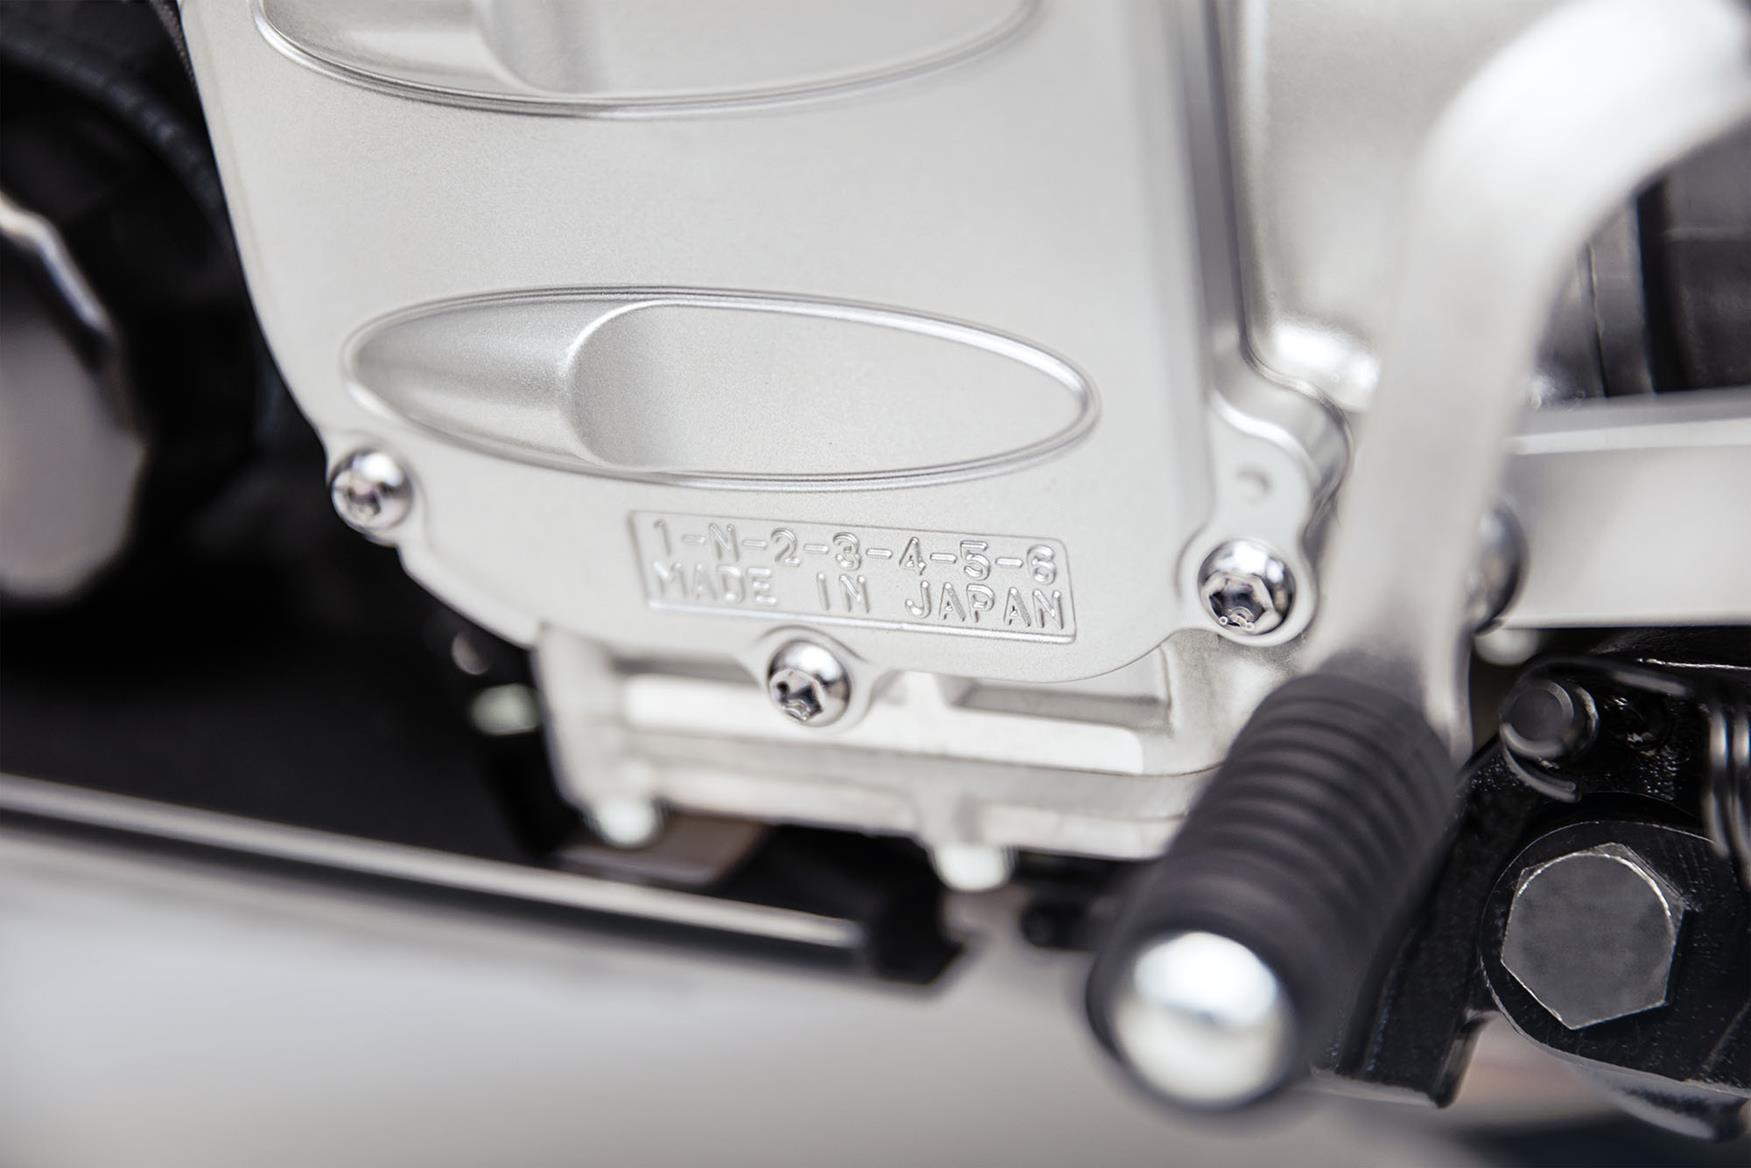 Yamaha FJR1300 has six gears from 2016